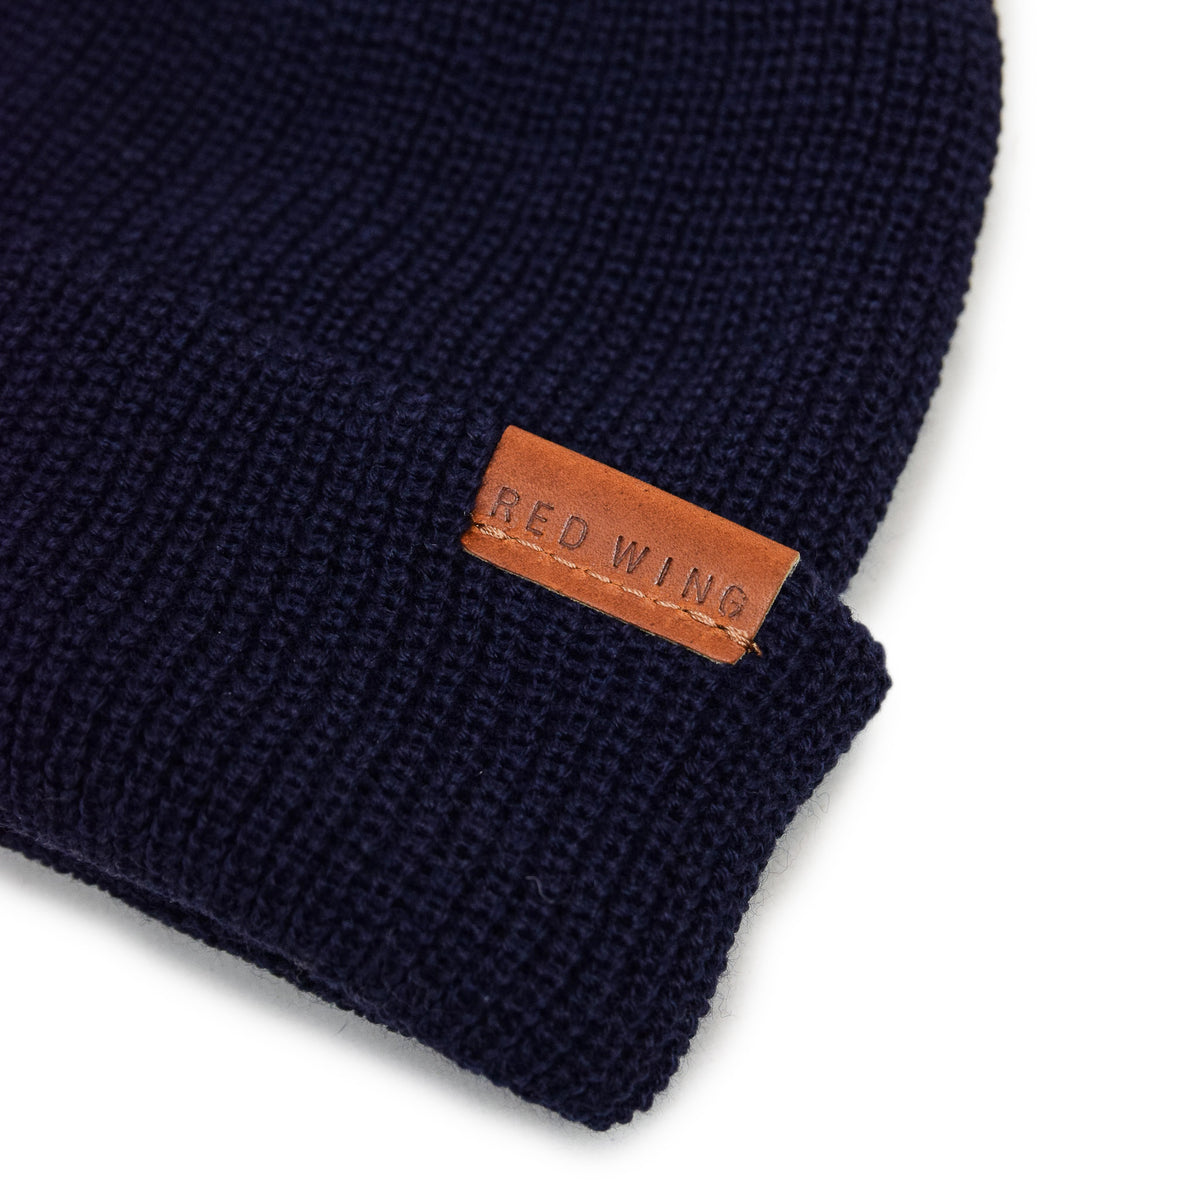 Red Wing Merino Wool Knit Beanie Navy tab detail